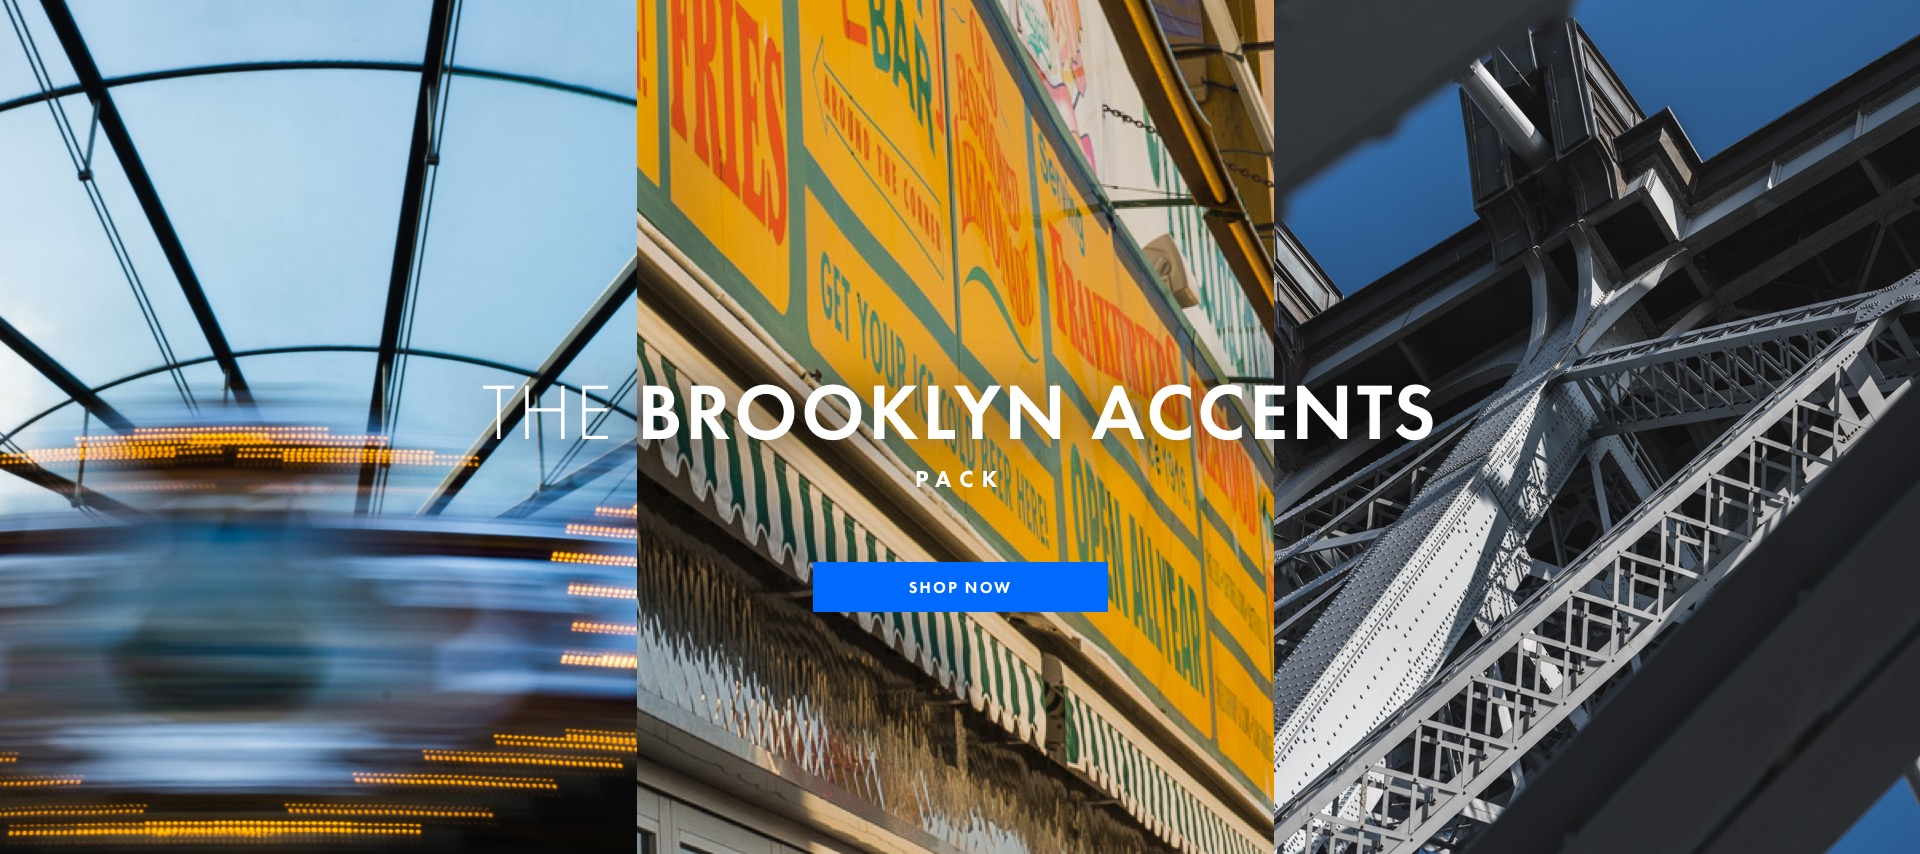 The Brooklyn Accents Pack - Shop Now